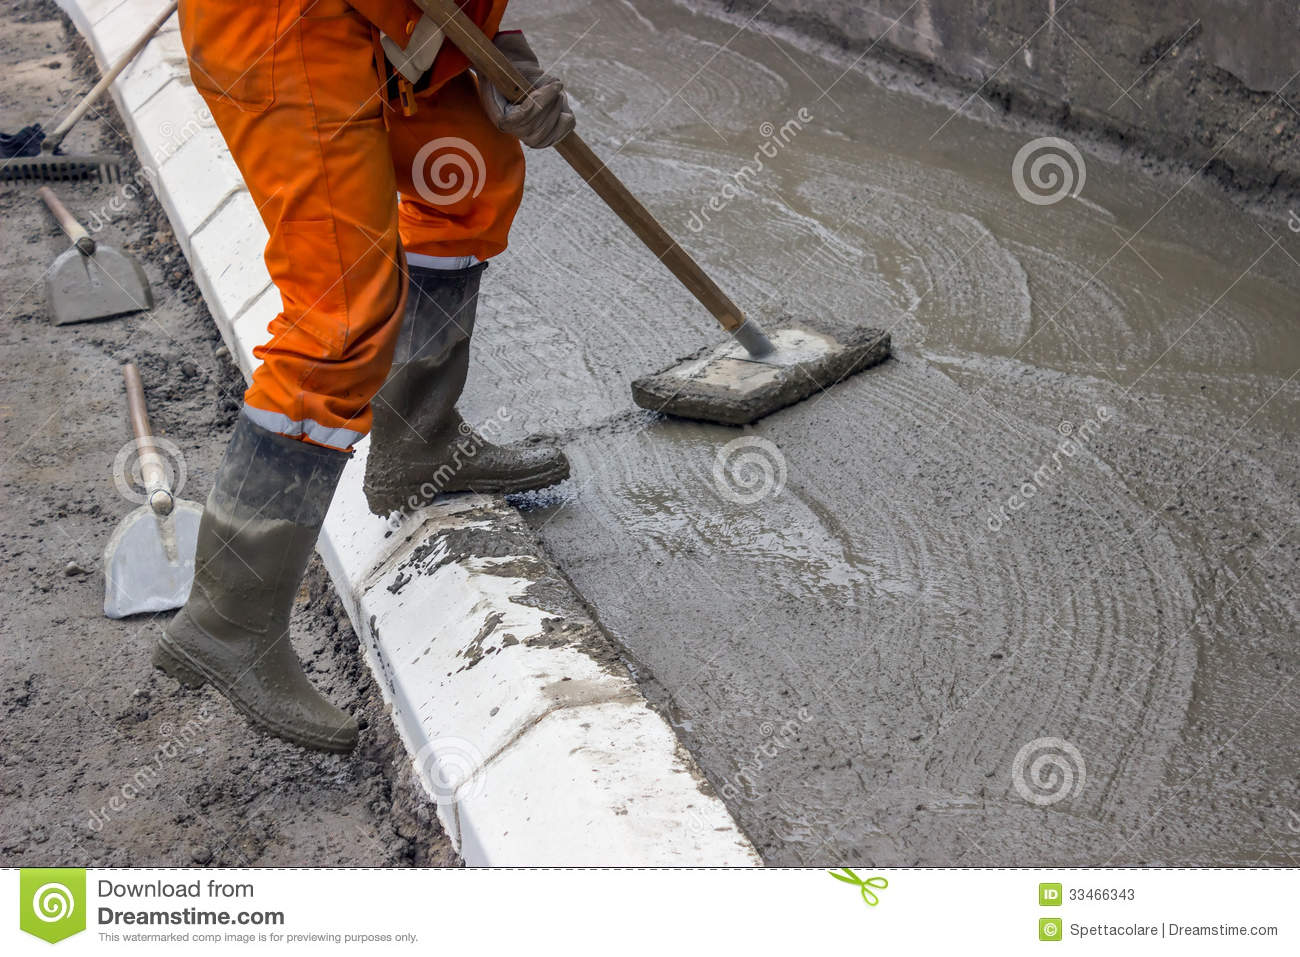 Stock Images Bedroom Wiht Grey Green Walls White Bedding Image28840834 in addition Stock Photos Concrete Screeding Workmen Leveling Fresh Leveling Tool Newly Poured Sidewalk Building Site Wooden Bull Float Image33466343 likewise The Village Of East Harbor Health Wellness Center further Lunch Learn October 6th as well Titanic Belfast. on community center floor plans